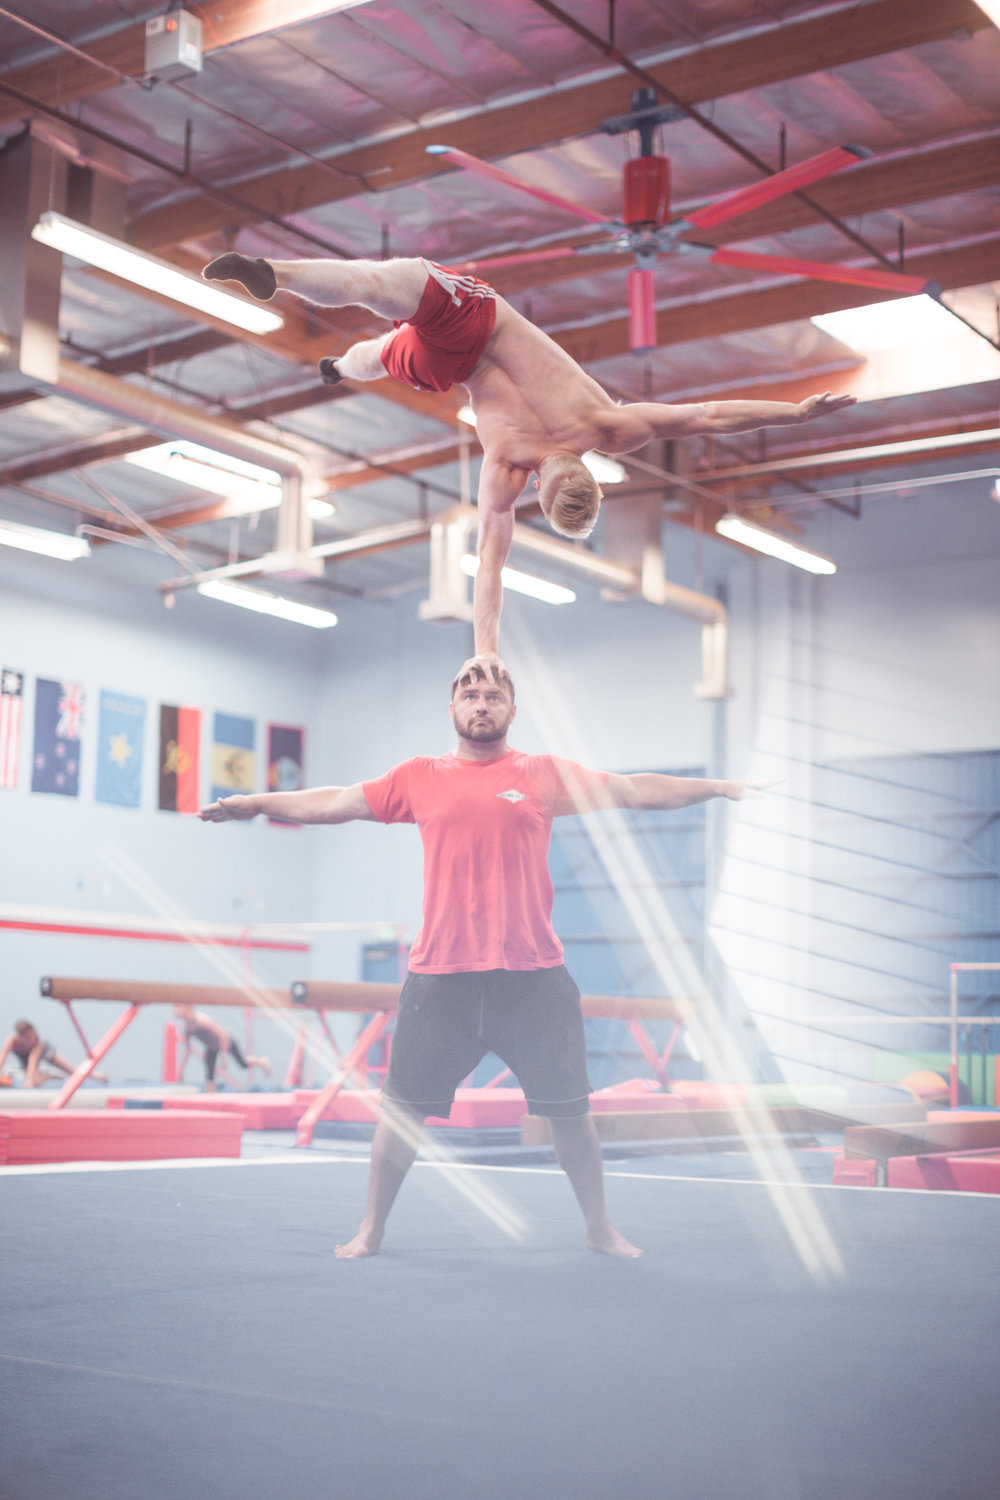 Elite performance team members, Axl Osborne and Ryan Gibson, killing skills at realis gymnastic academy redlands, june 22nd 2017. photo by Carson.Breen photography